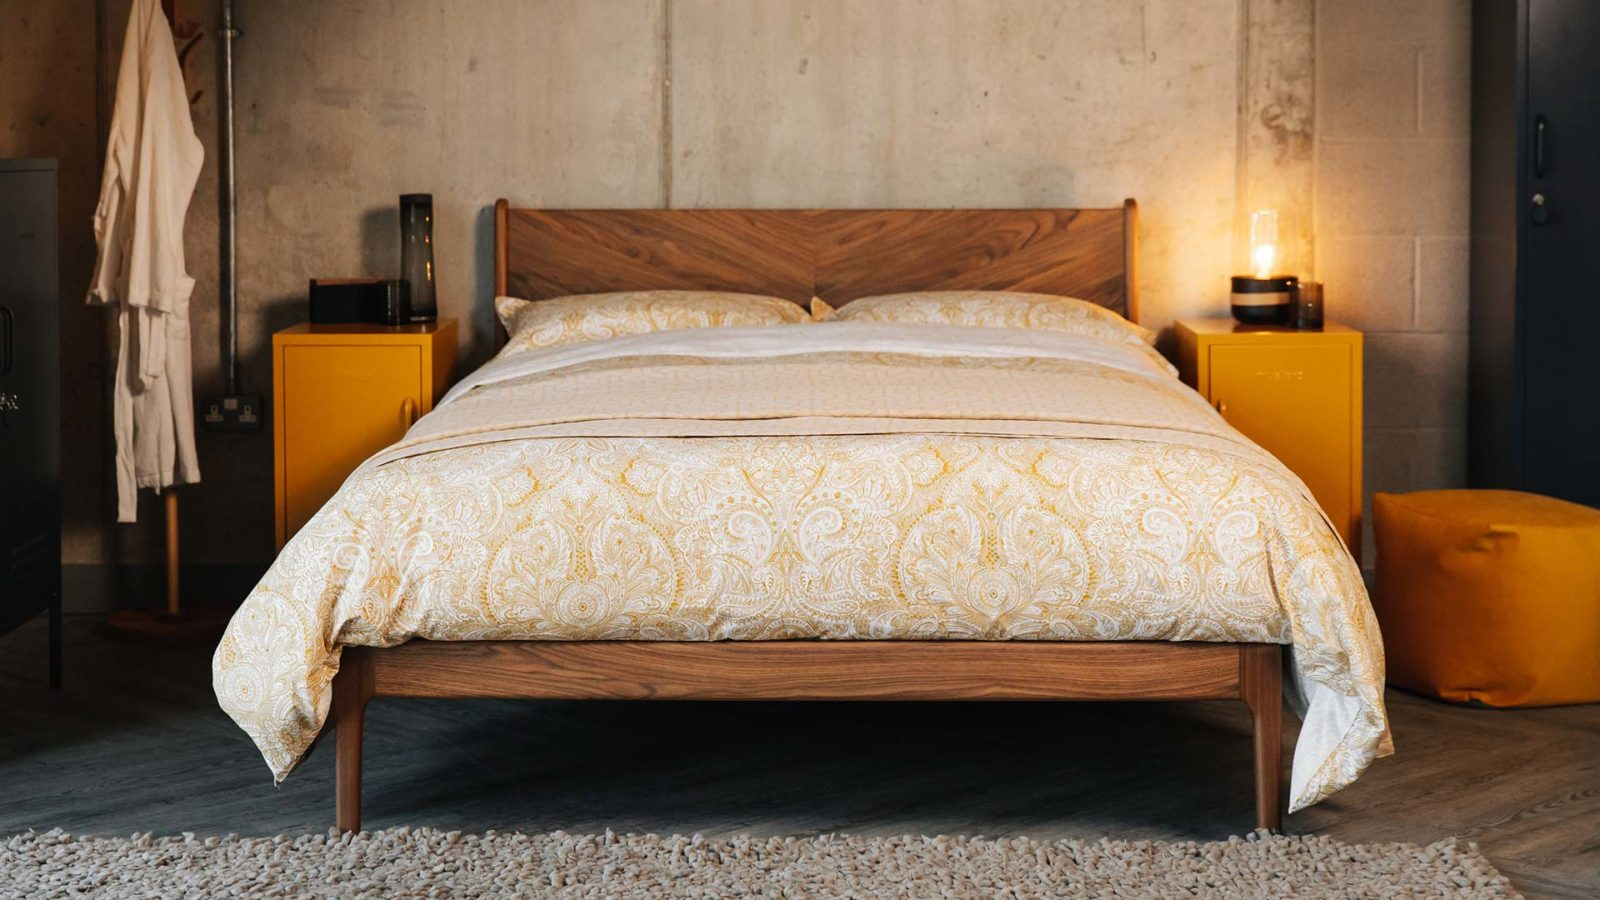 font view of the King size hand made walnut Hoxton bed